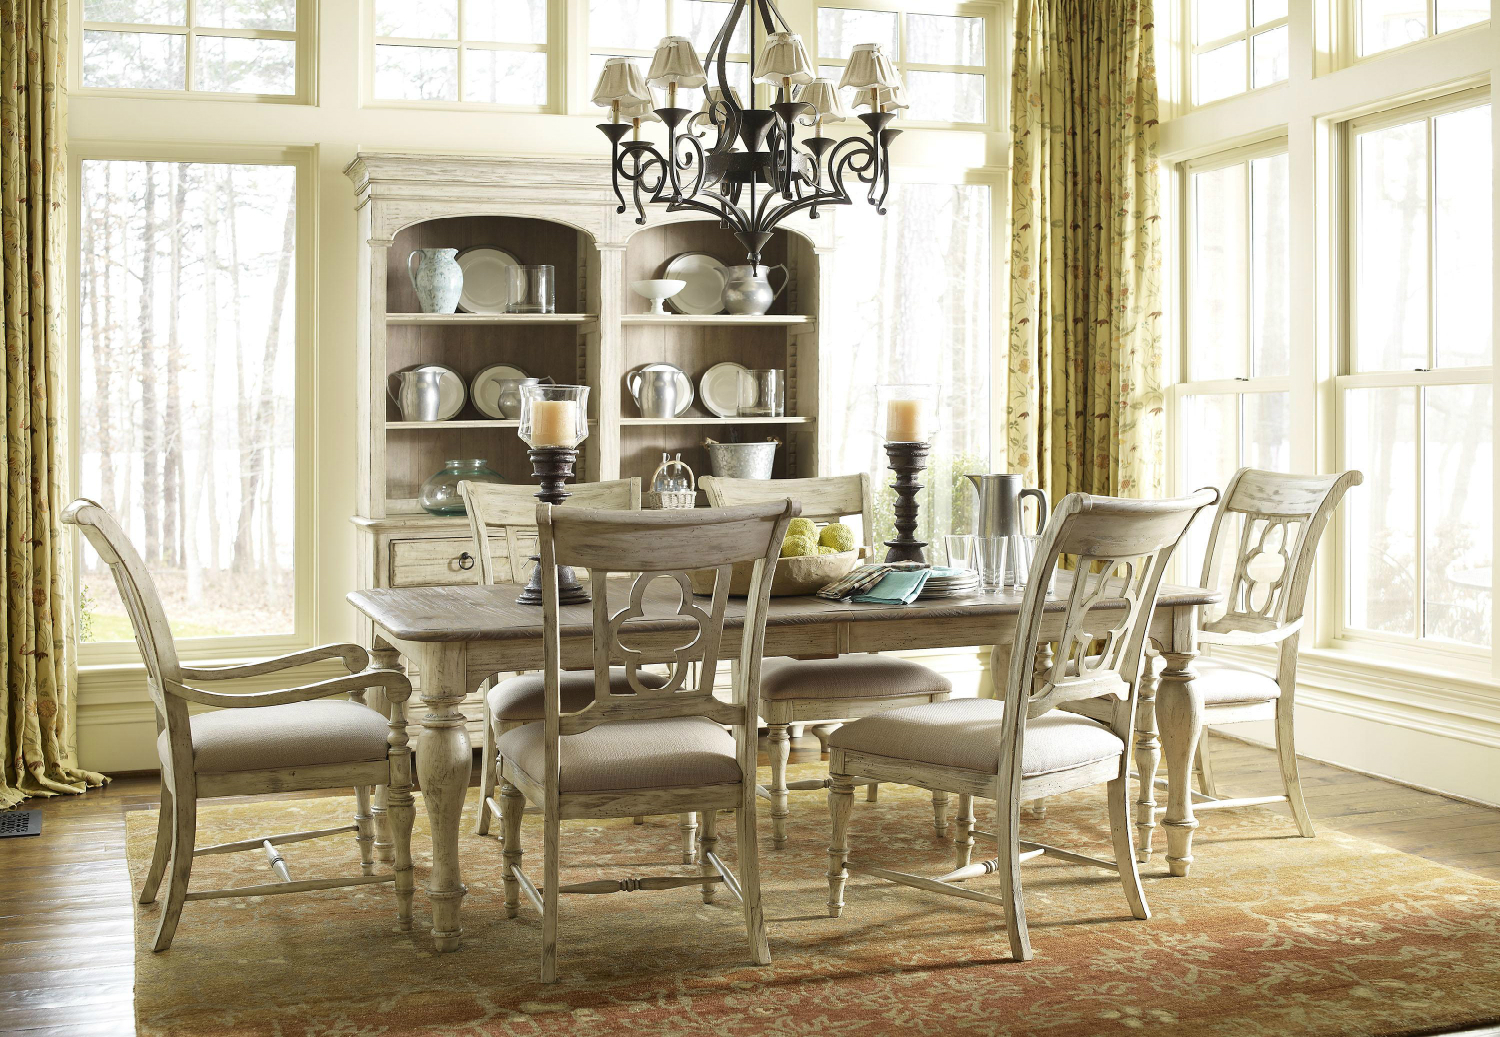 Dining Furniture. Jordan Furniture   Premier Furniture Stores in Florence SC   843